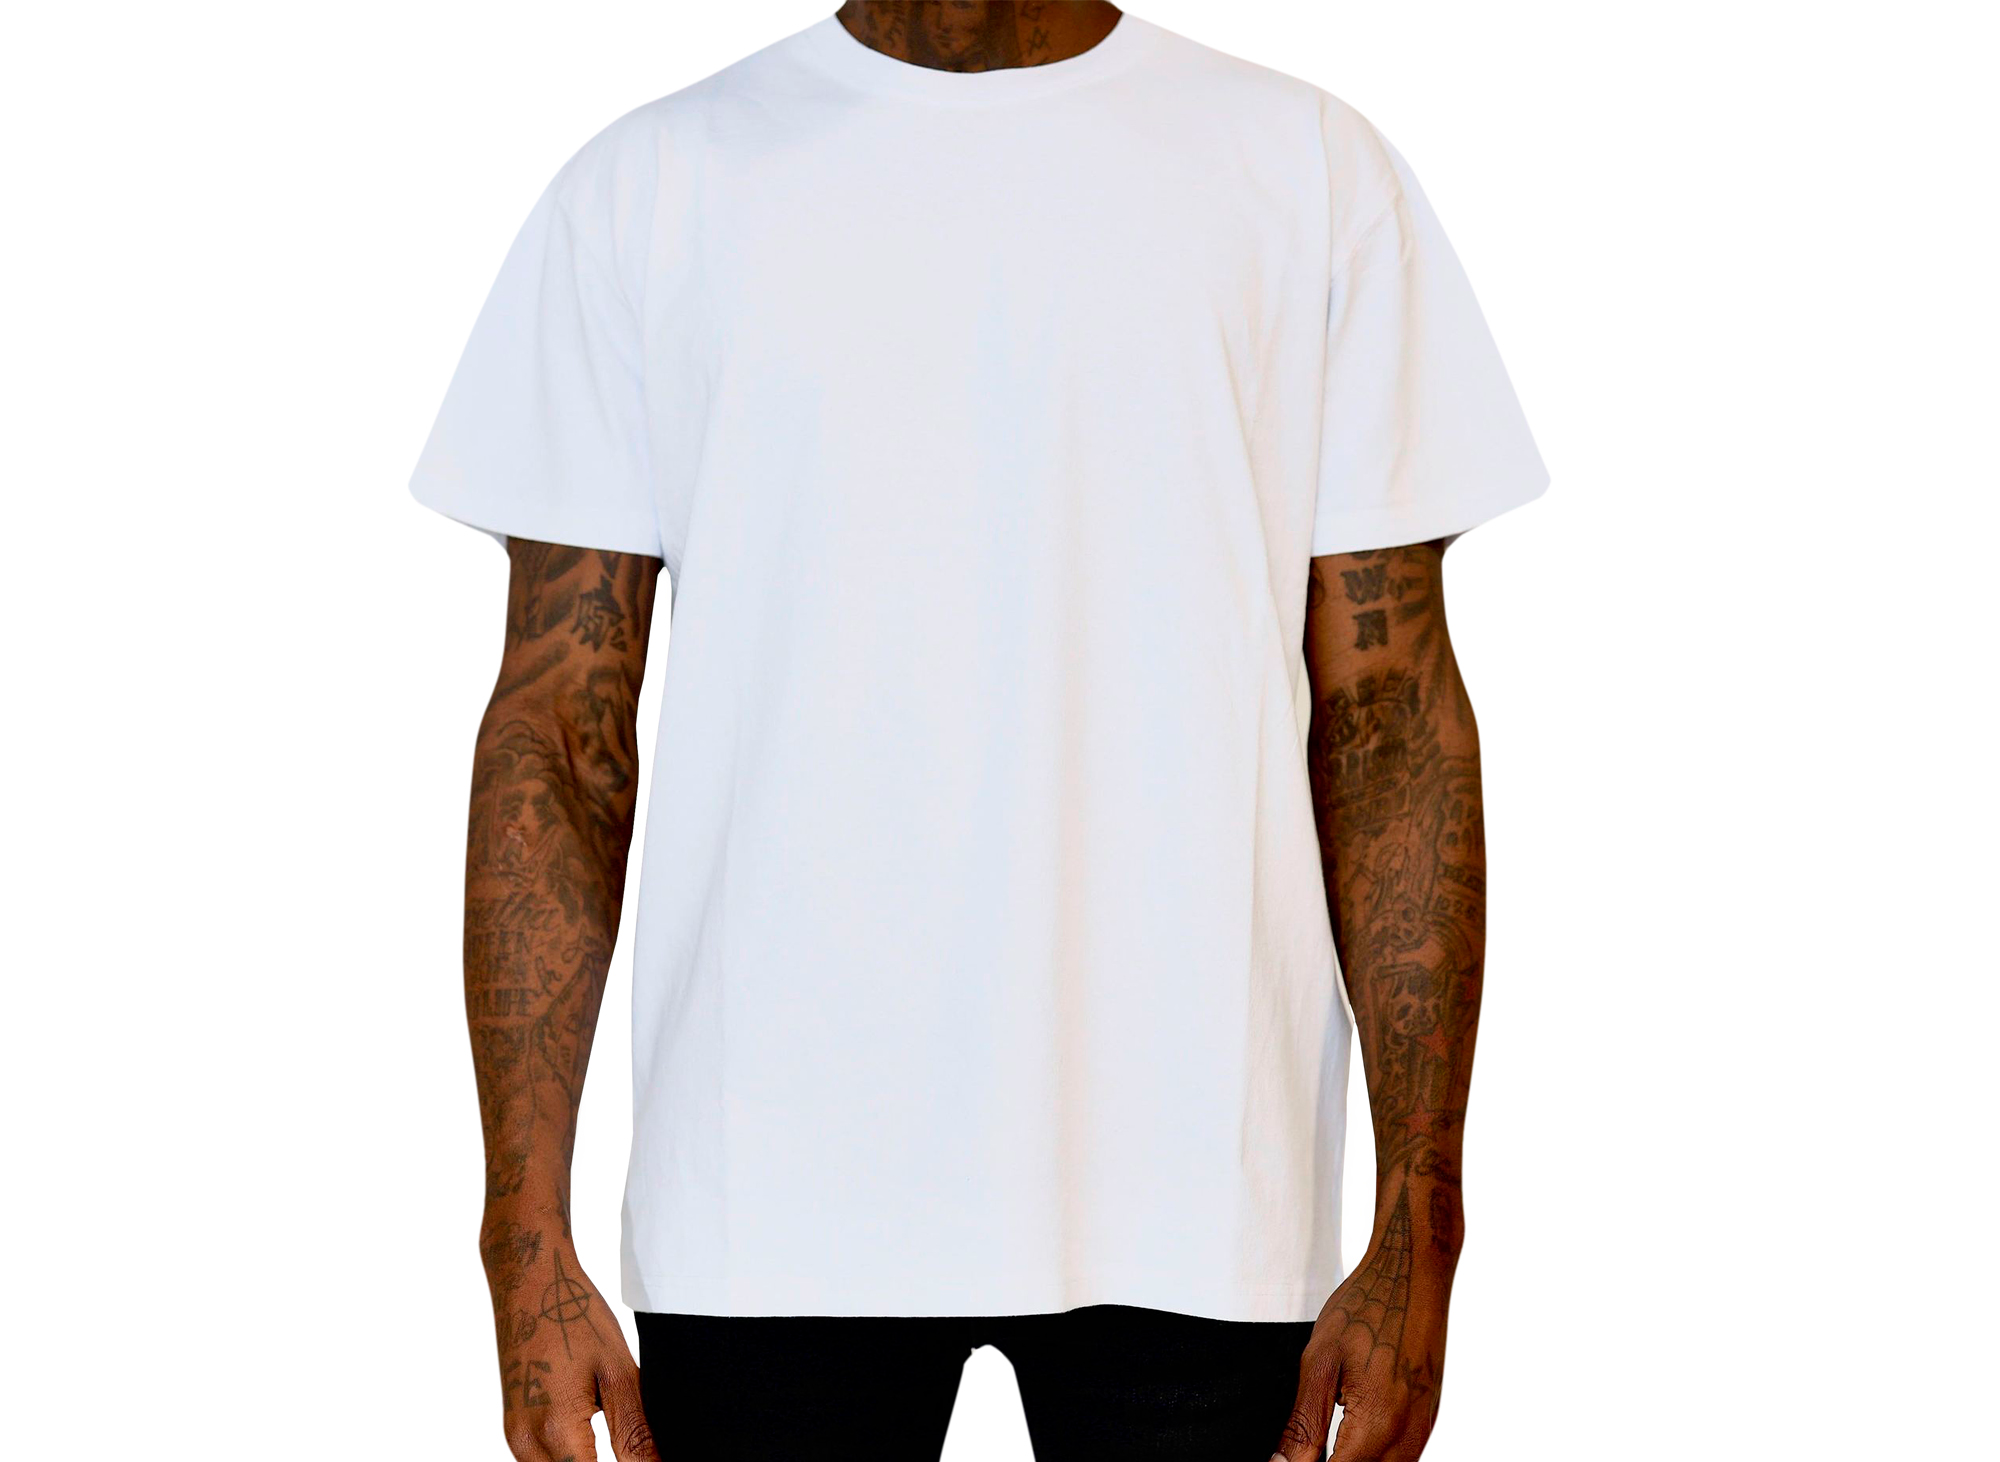 Oneness Riley Tee in Vintage White xld